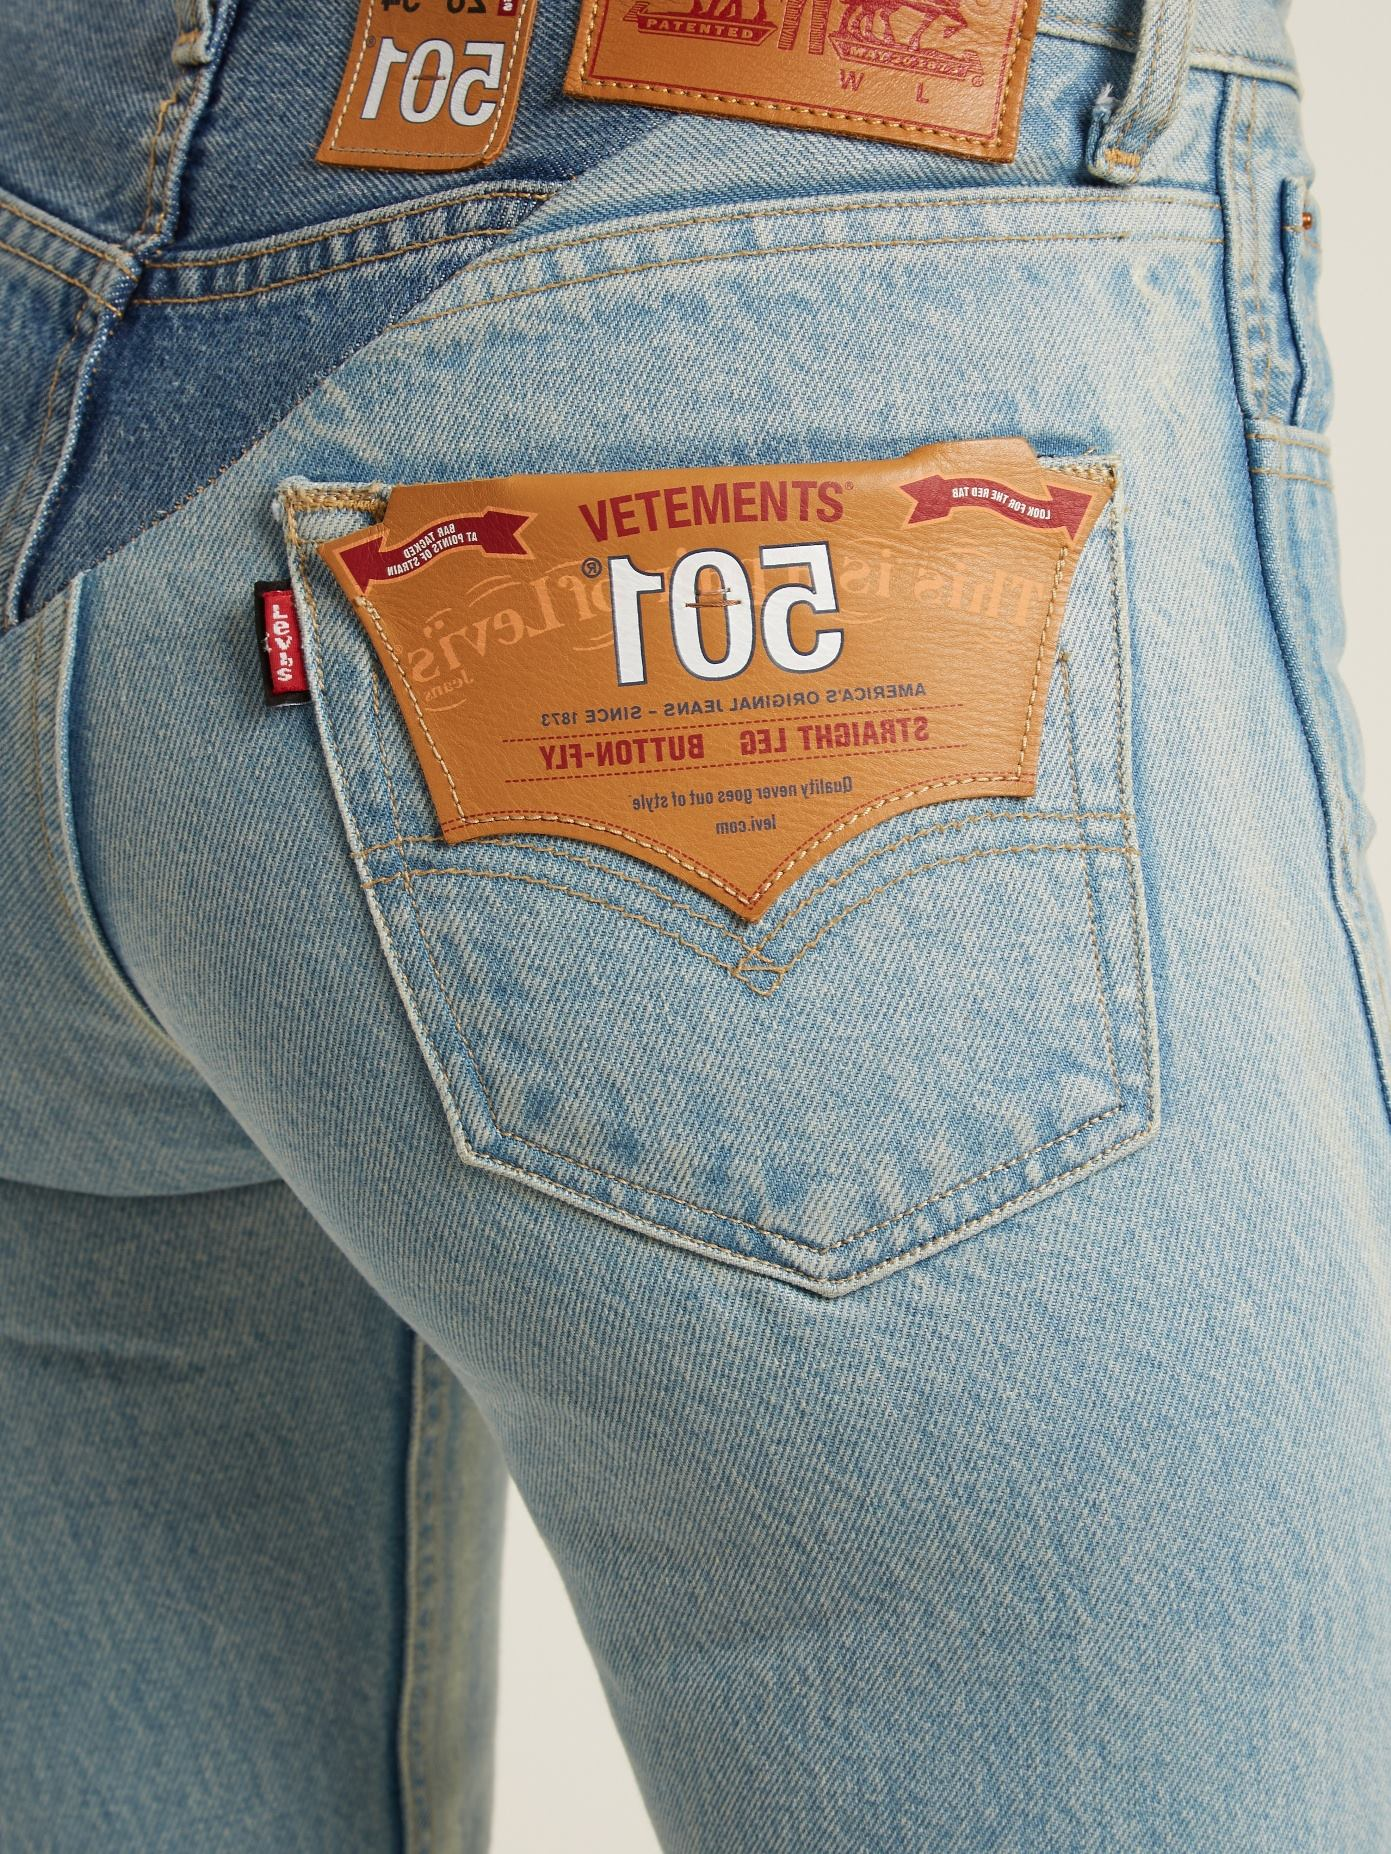 levis-outlet-the-village-outlet